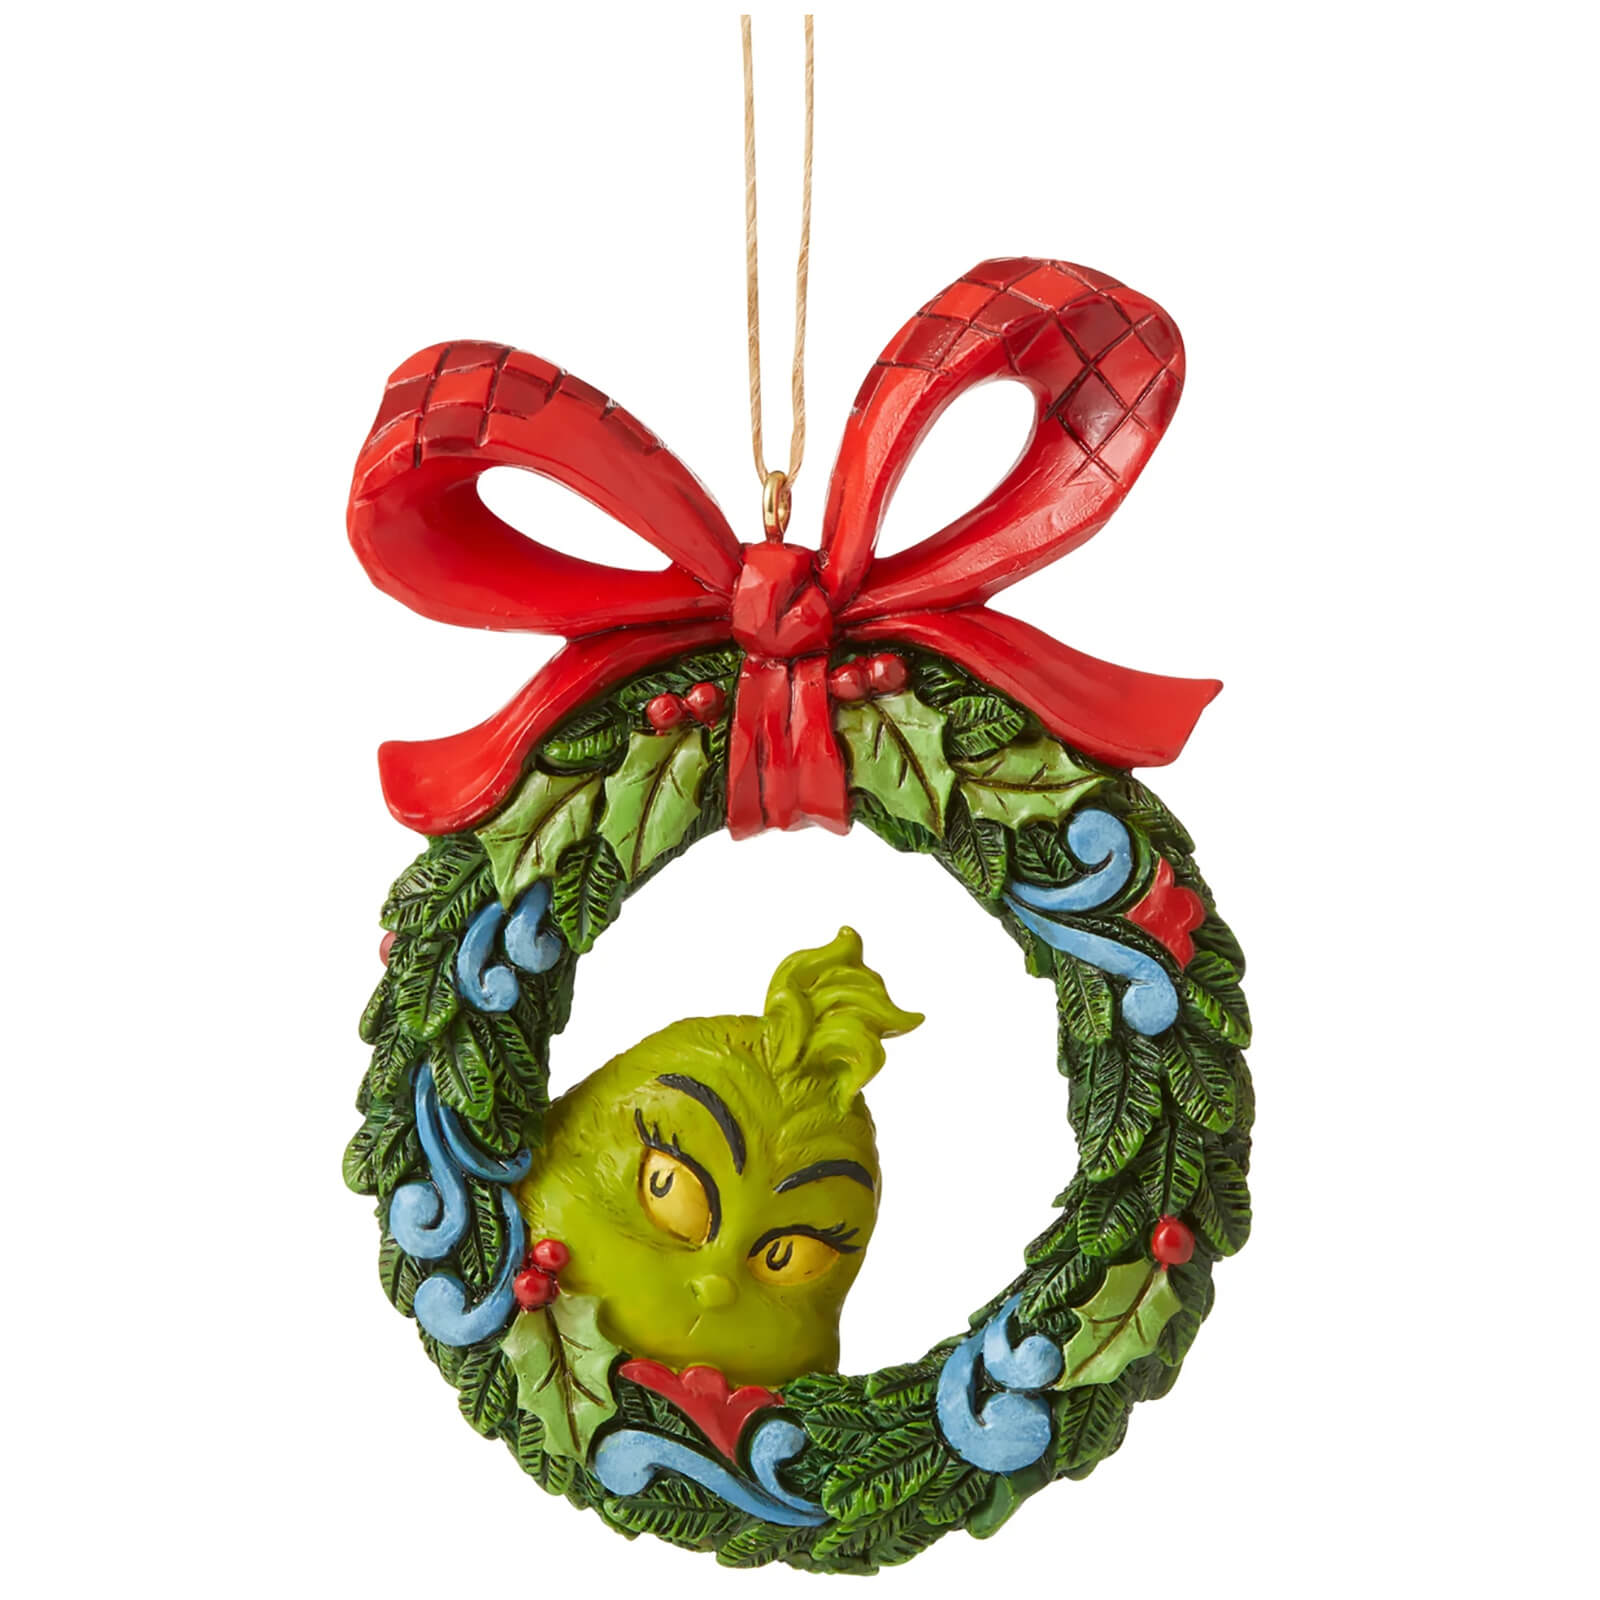 Image of The Grinch by Jim Shore Grinch Peeking Through Wreath (Hanging Ornament) 9cm